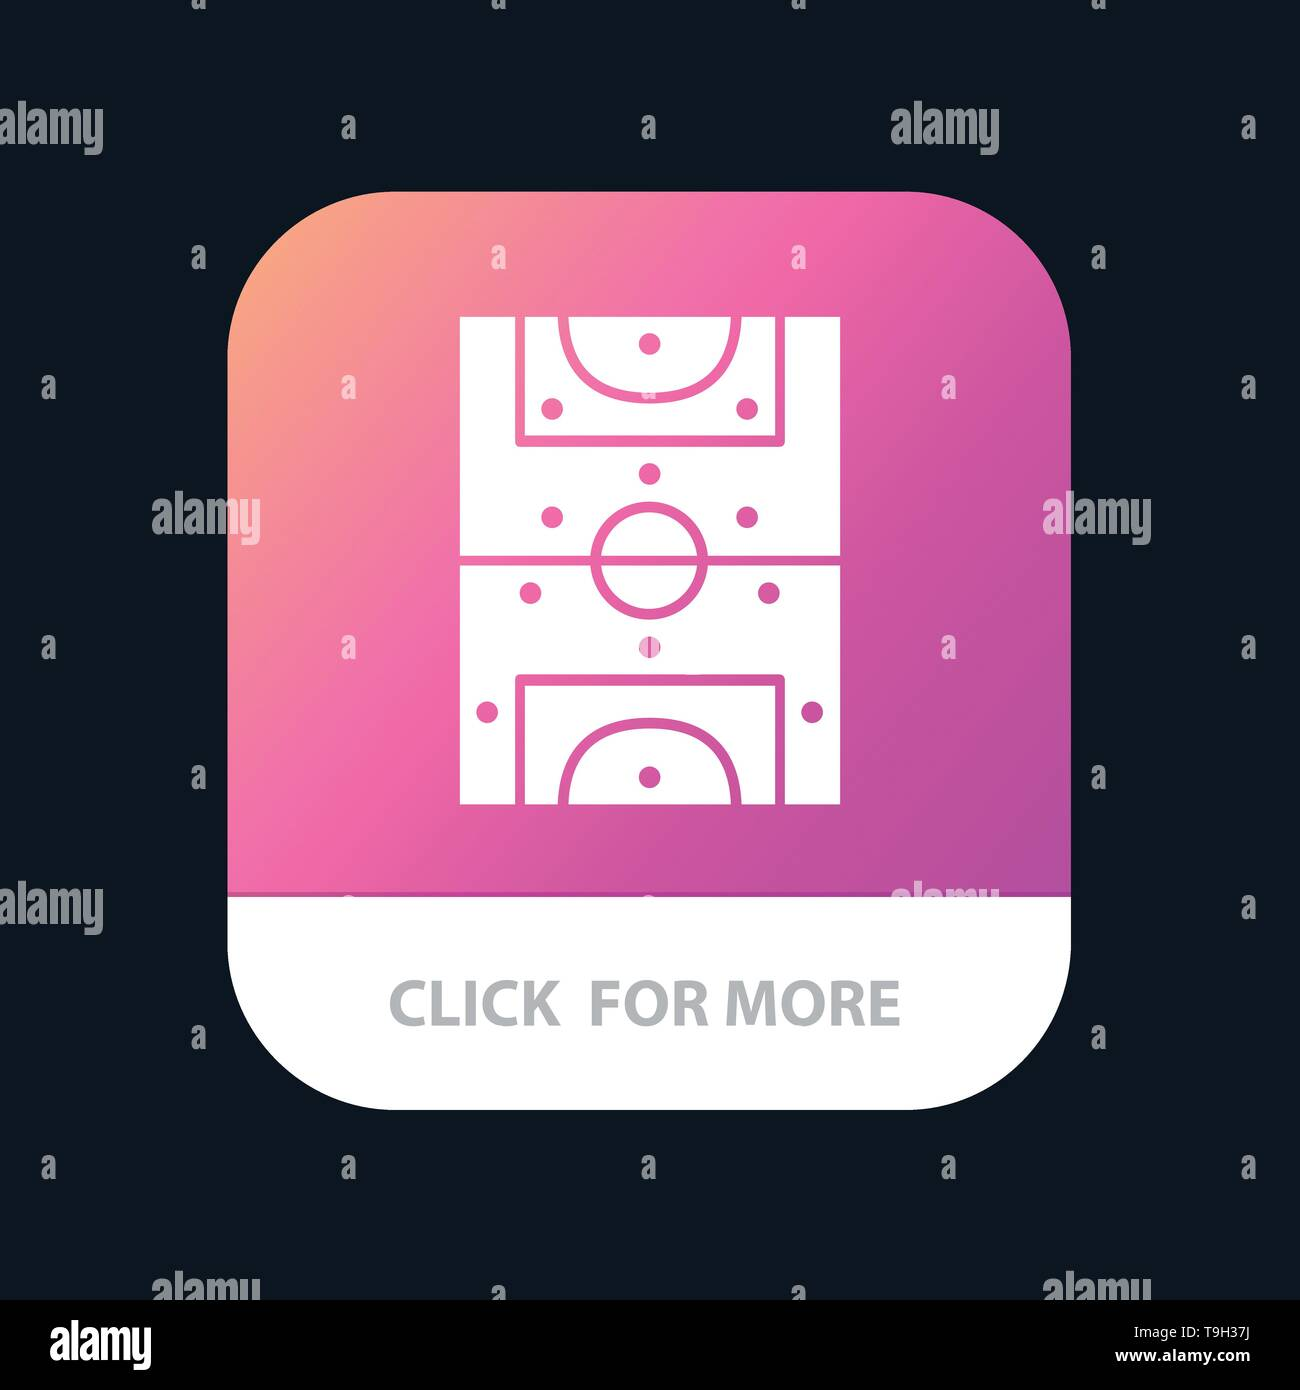 Entertainment, Game, Football, Field Mobile App Button. Android and IOS Glyph Version - Stock Image